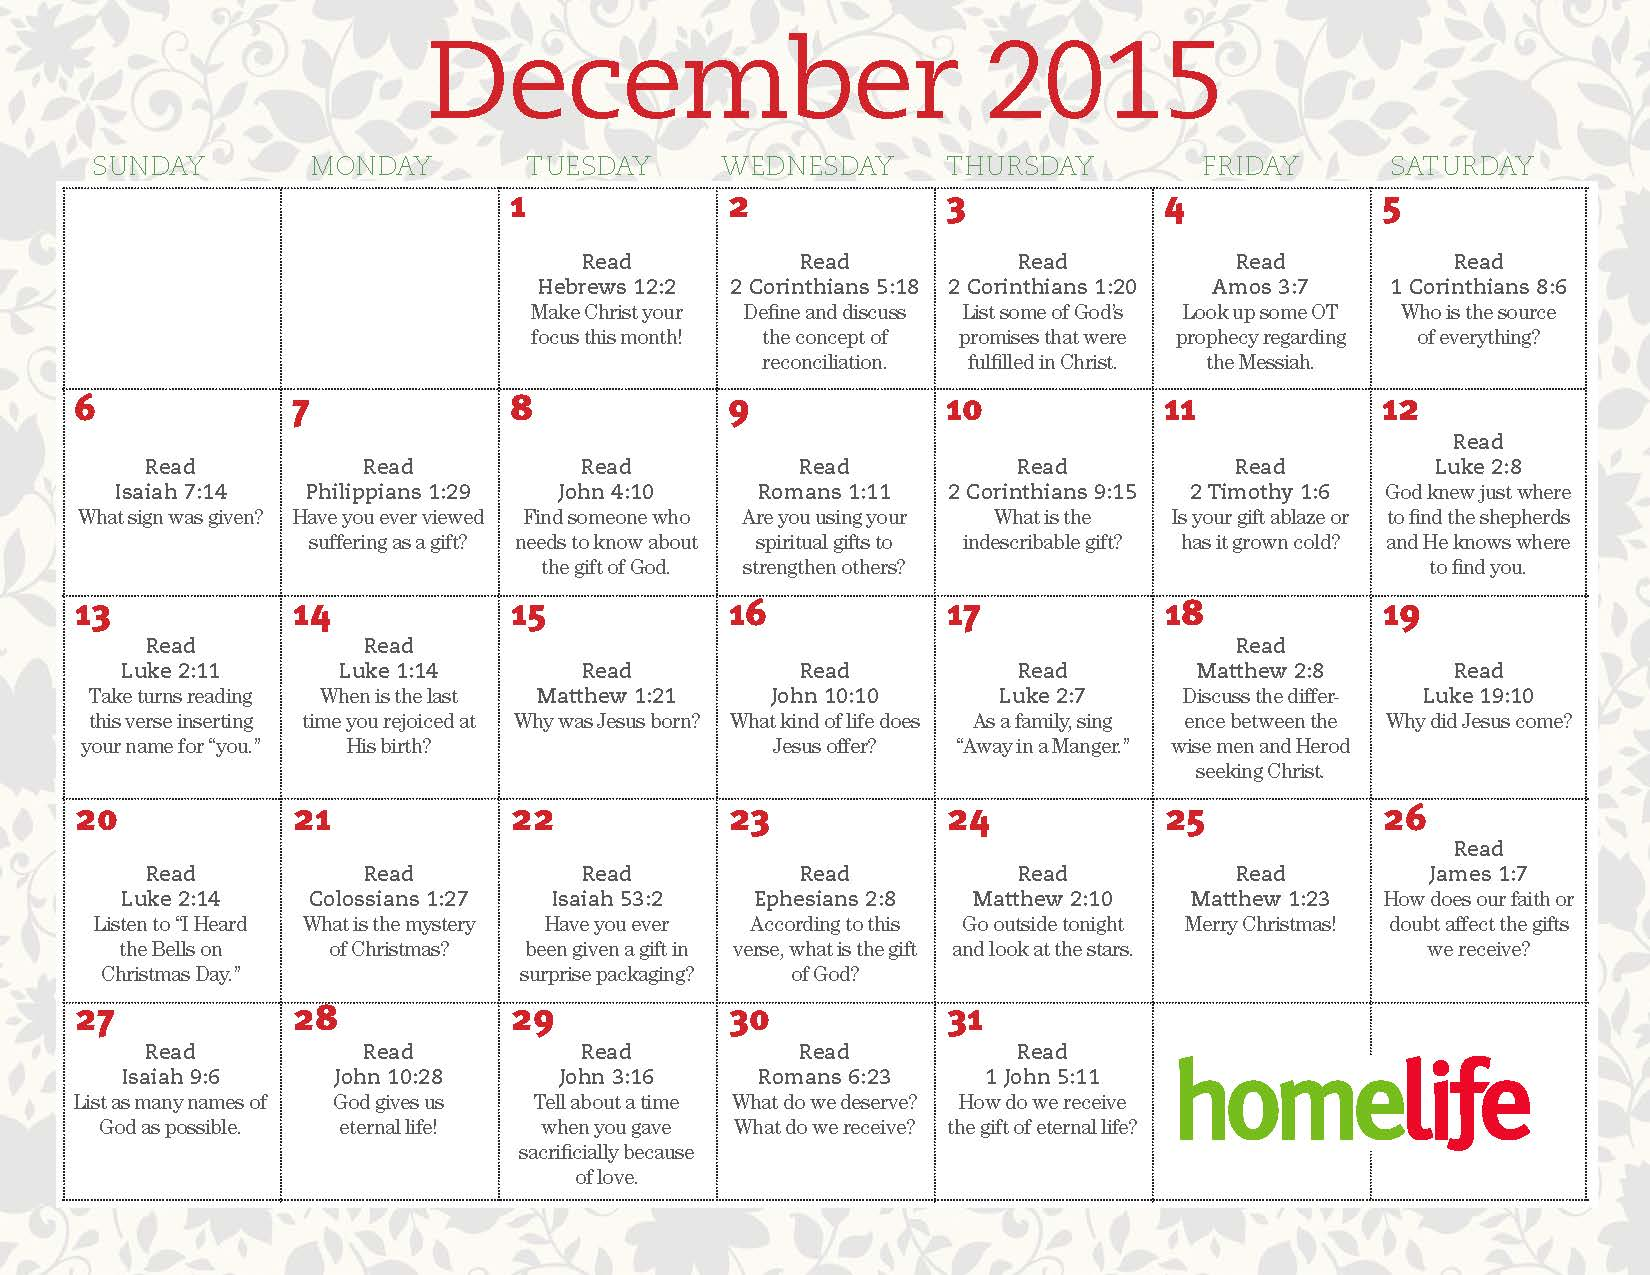 December Calendar Art : December homelife family time calendar and scripture art